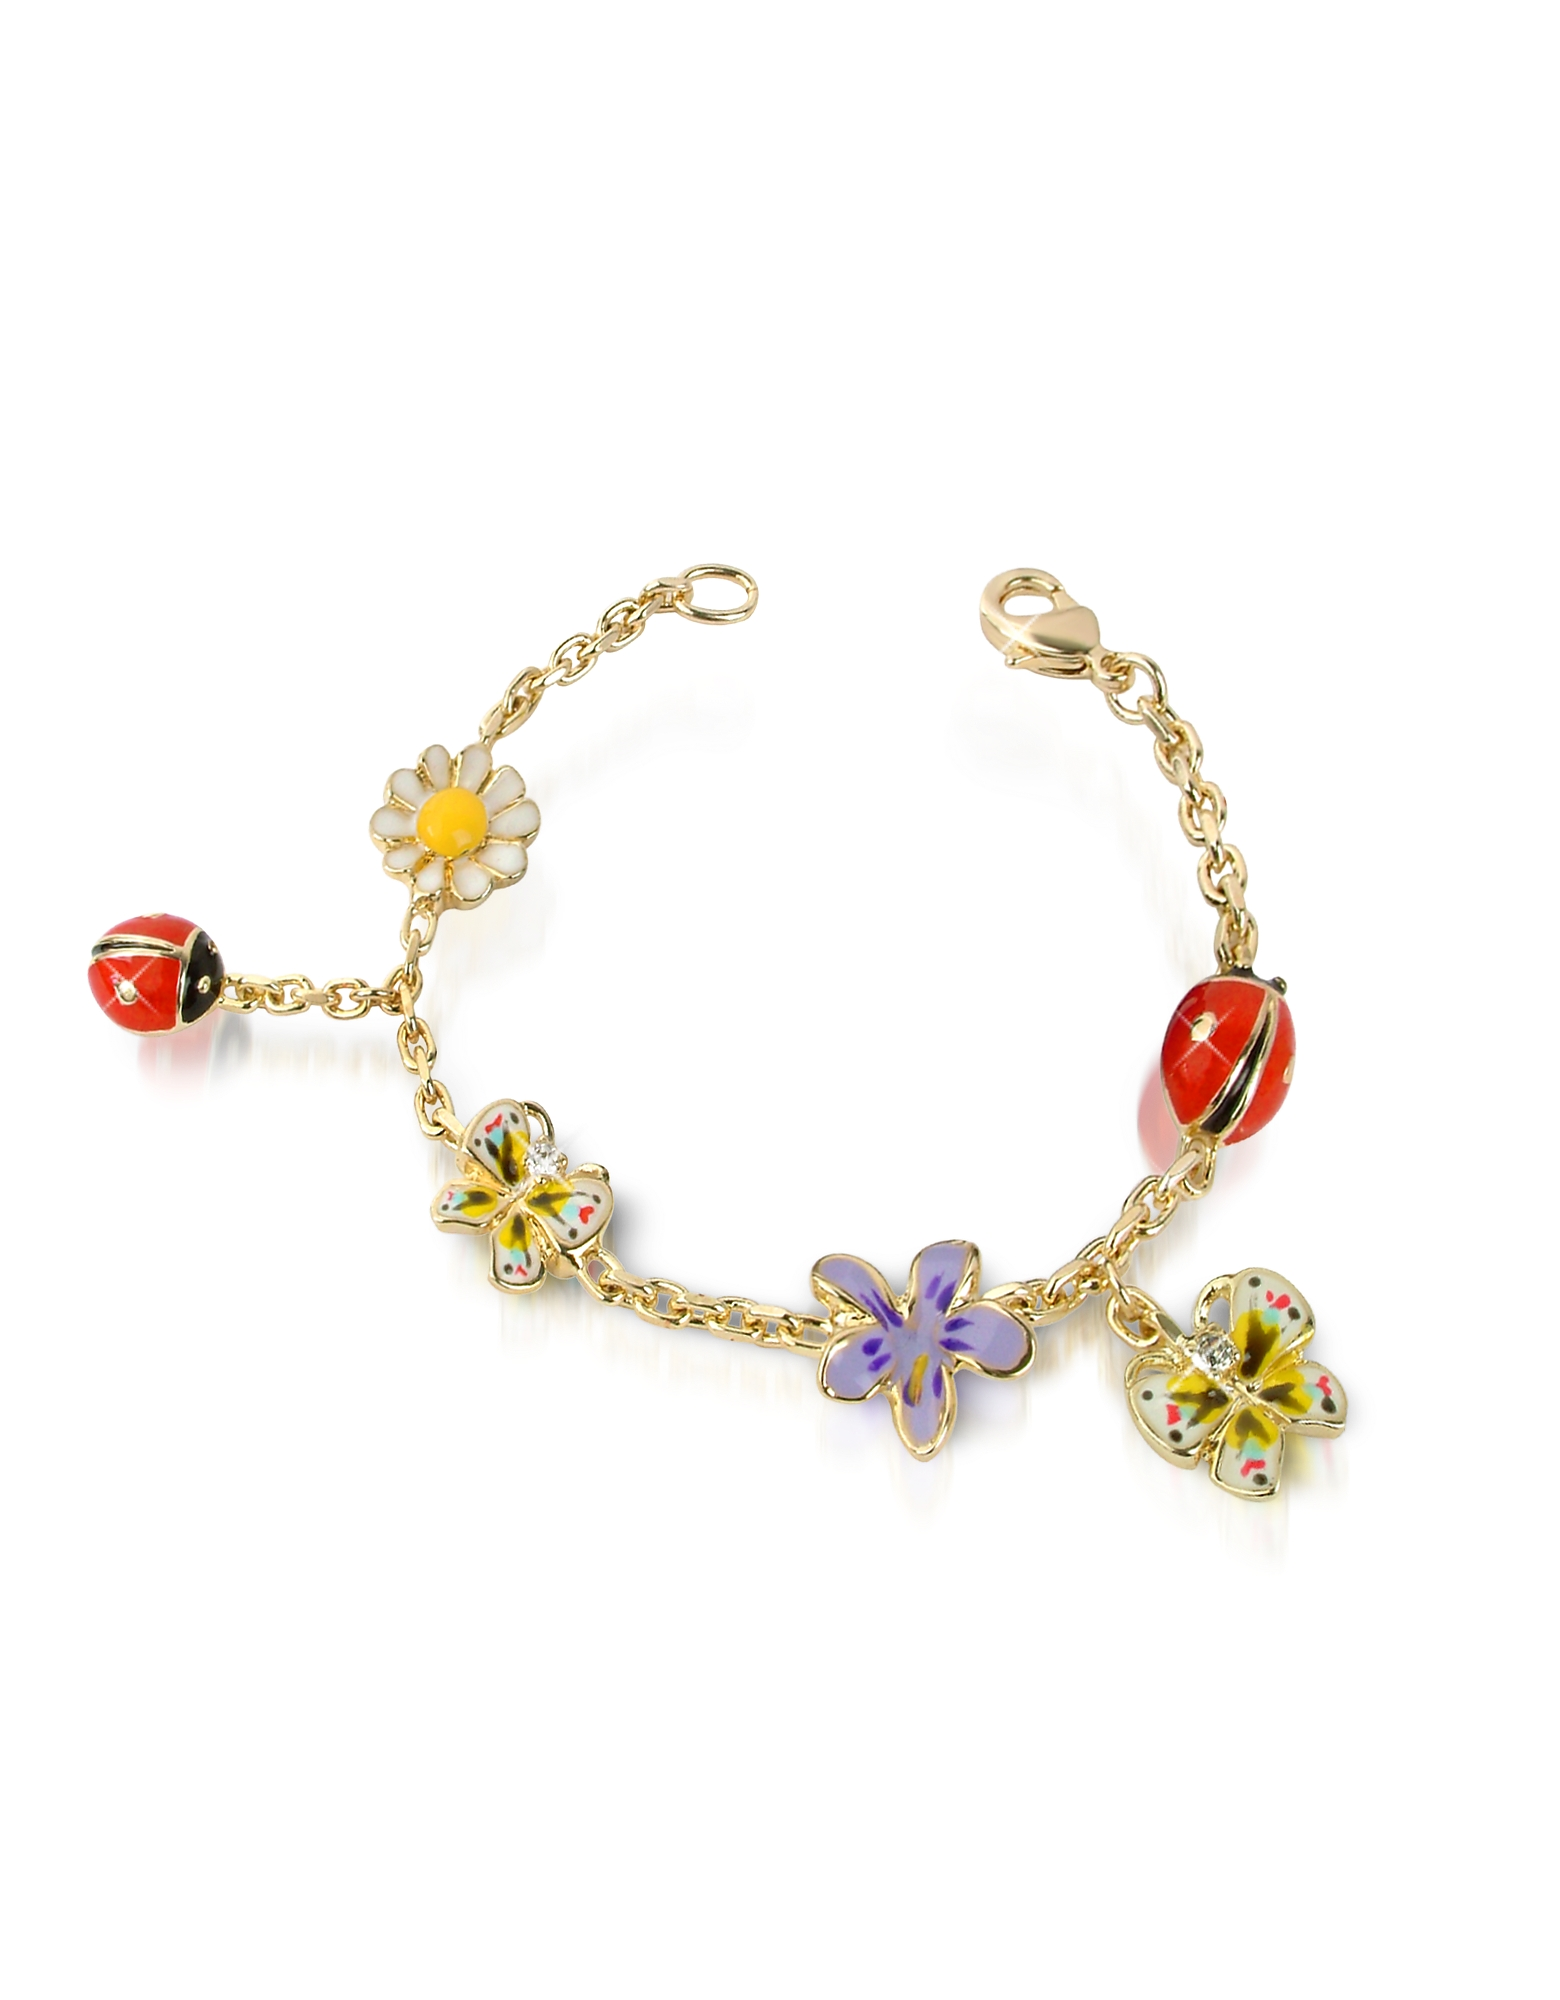 AZ Collection Bracelets, Garden Line - Enamel Gold Plated Charm Bracelet